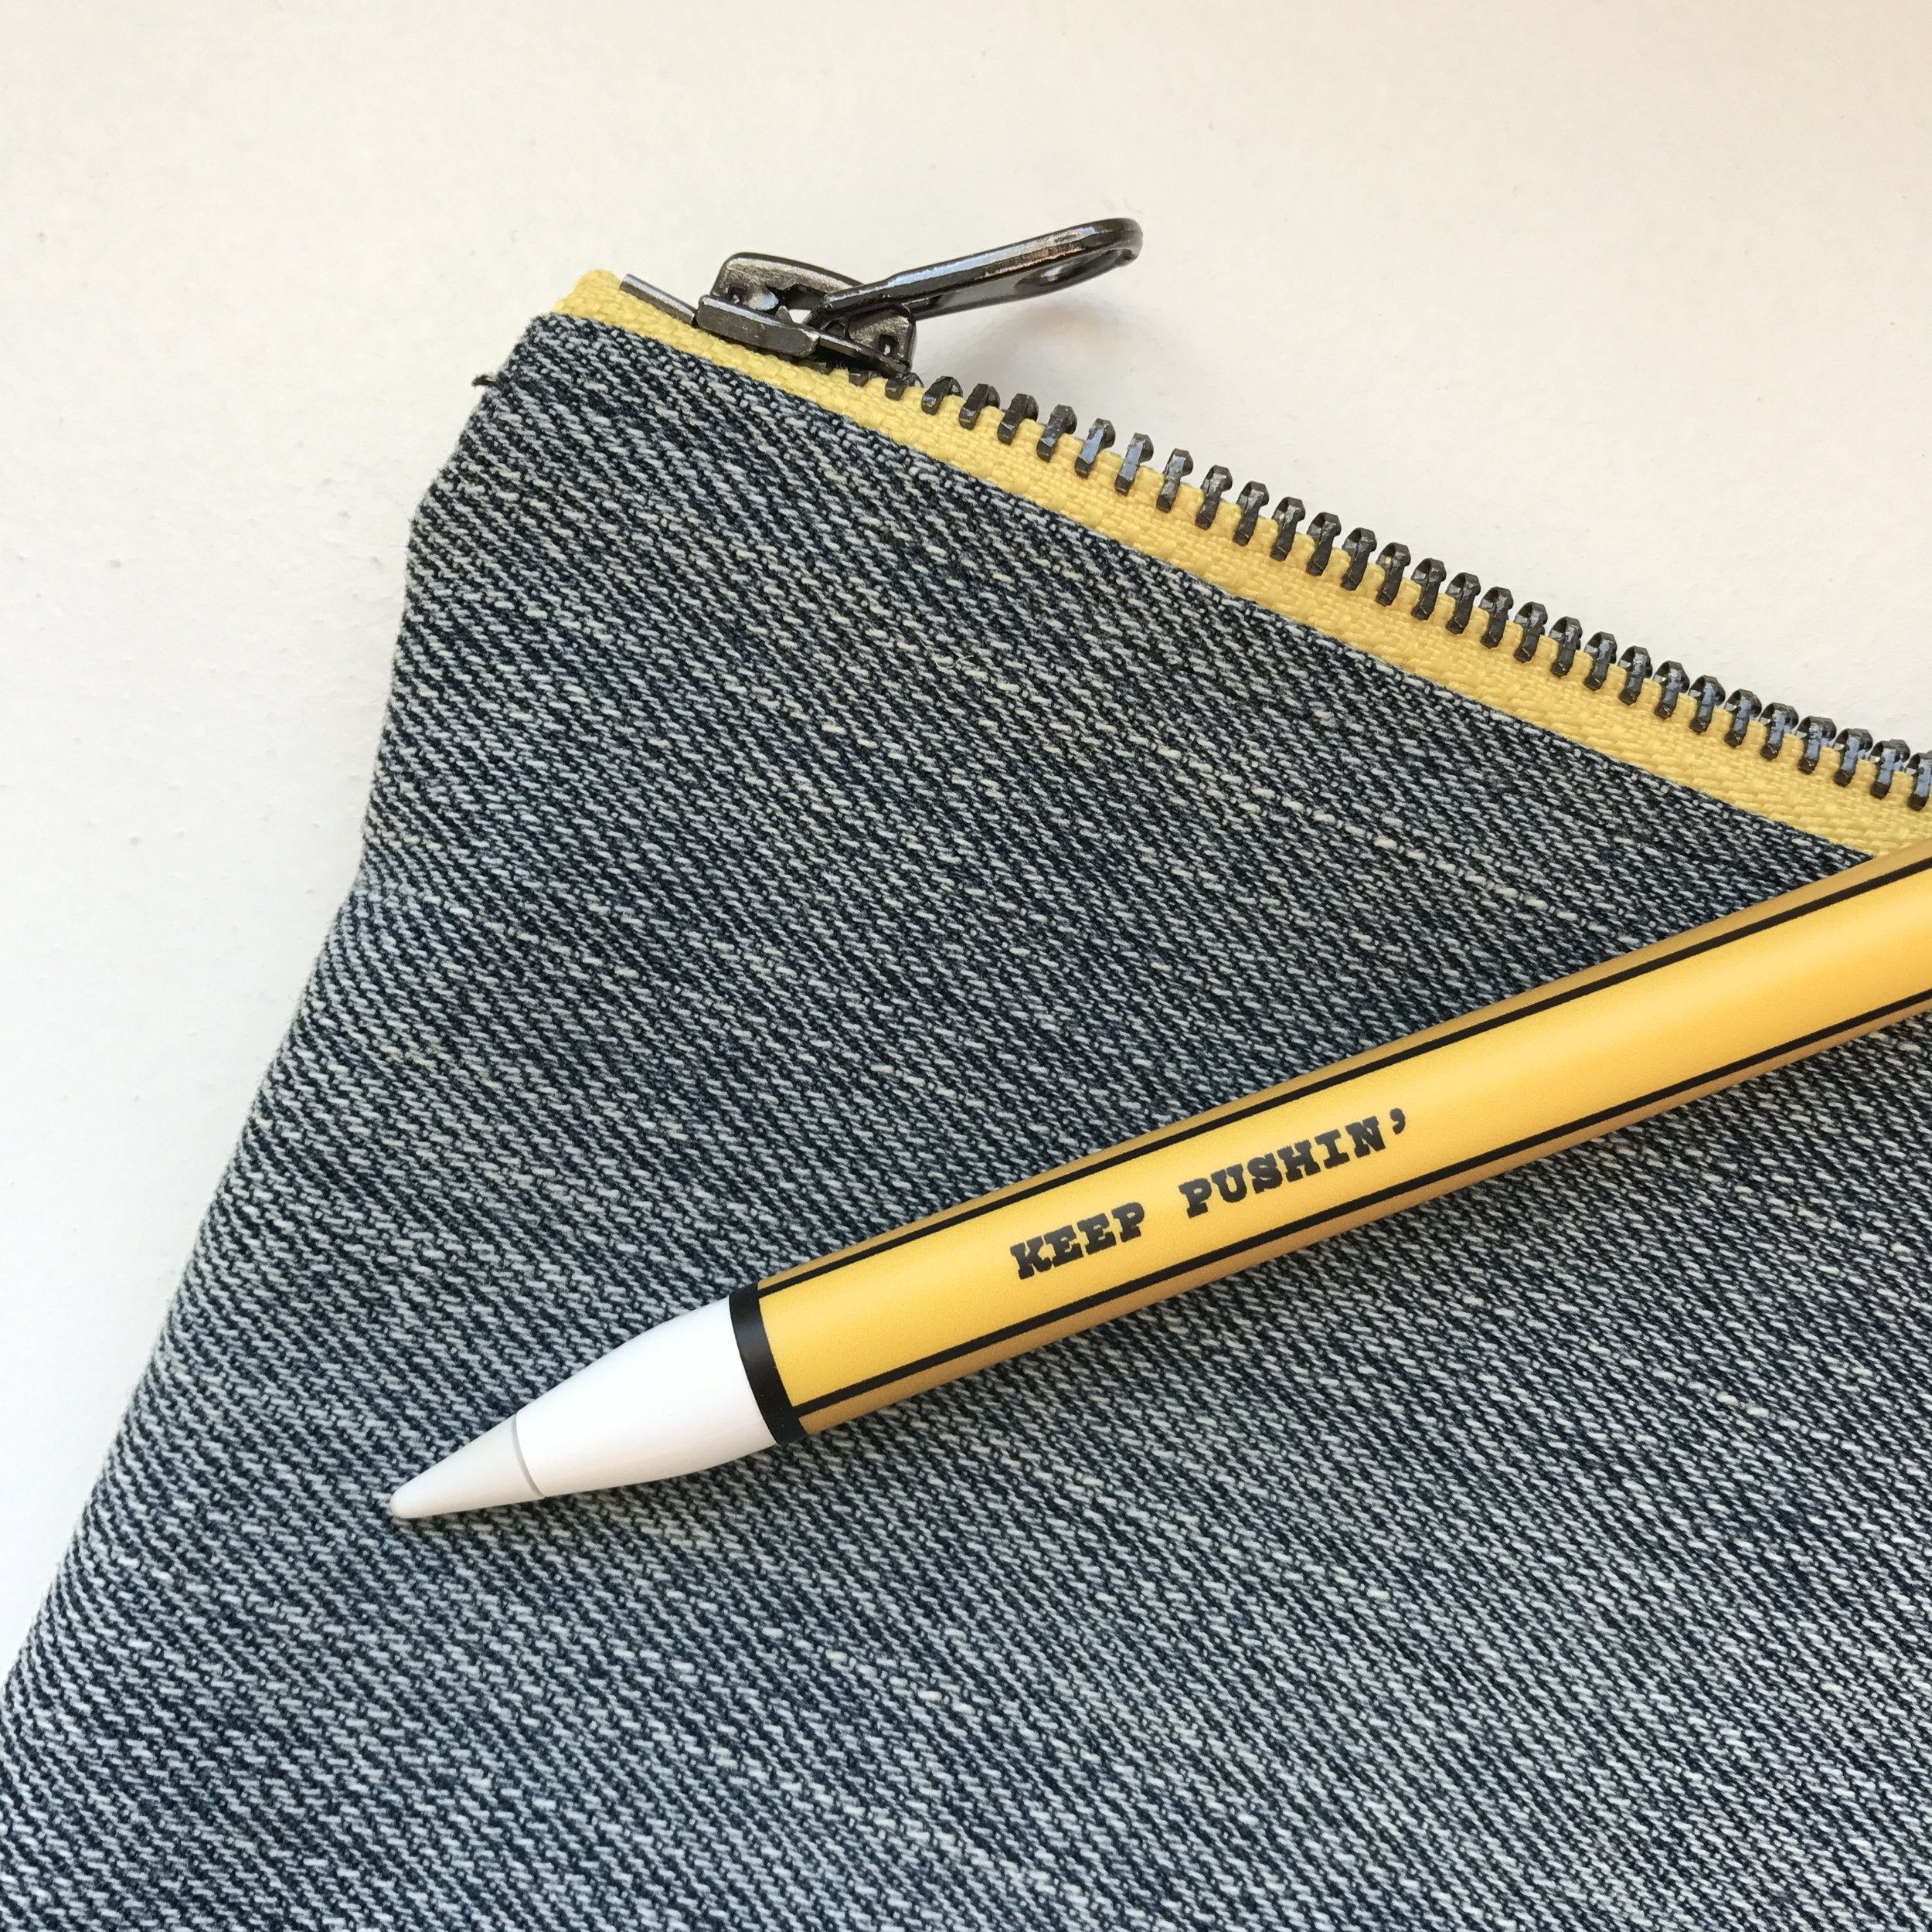 Pencil wrap no2-2.jpg